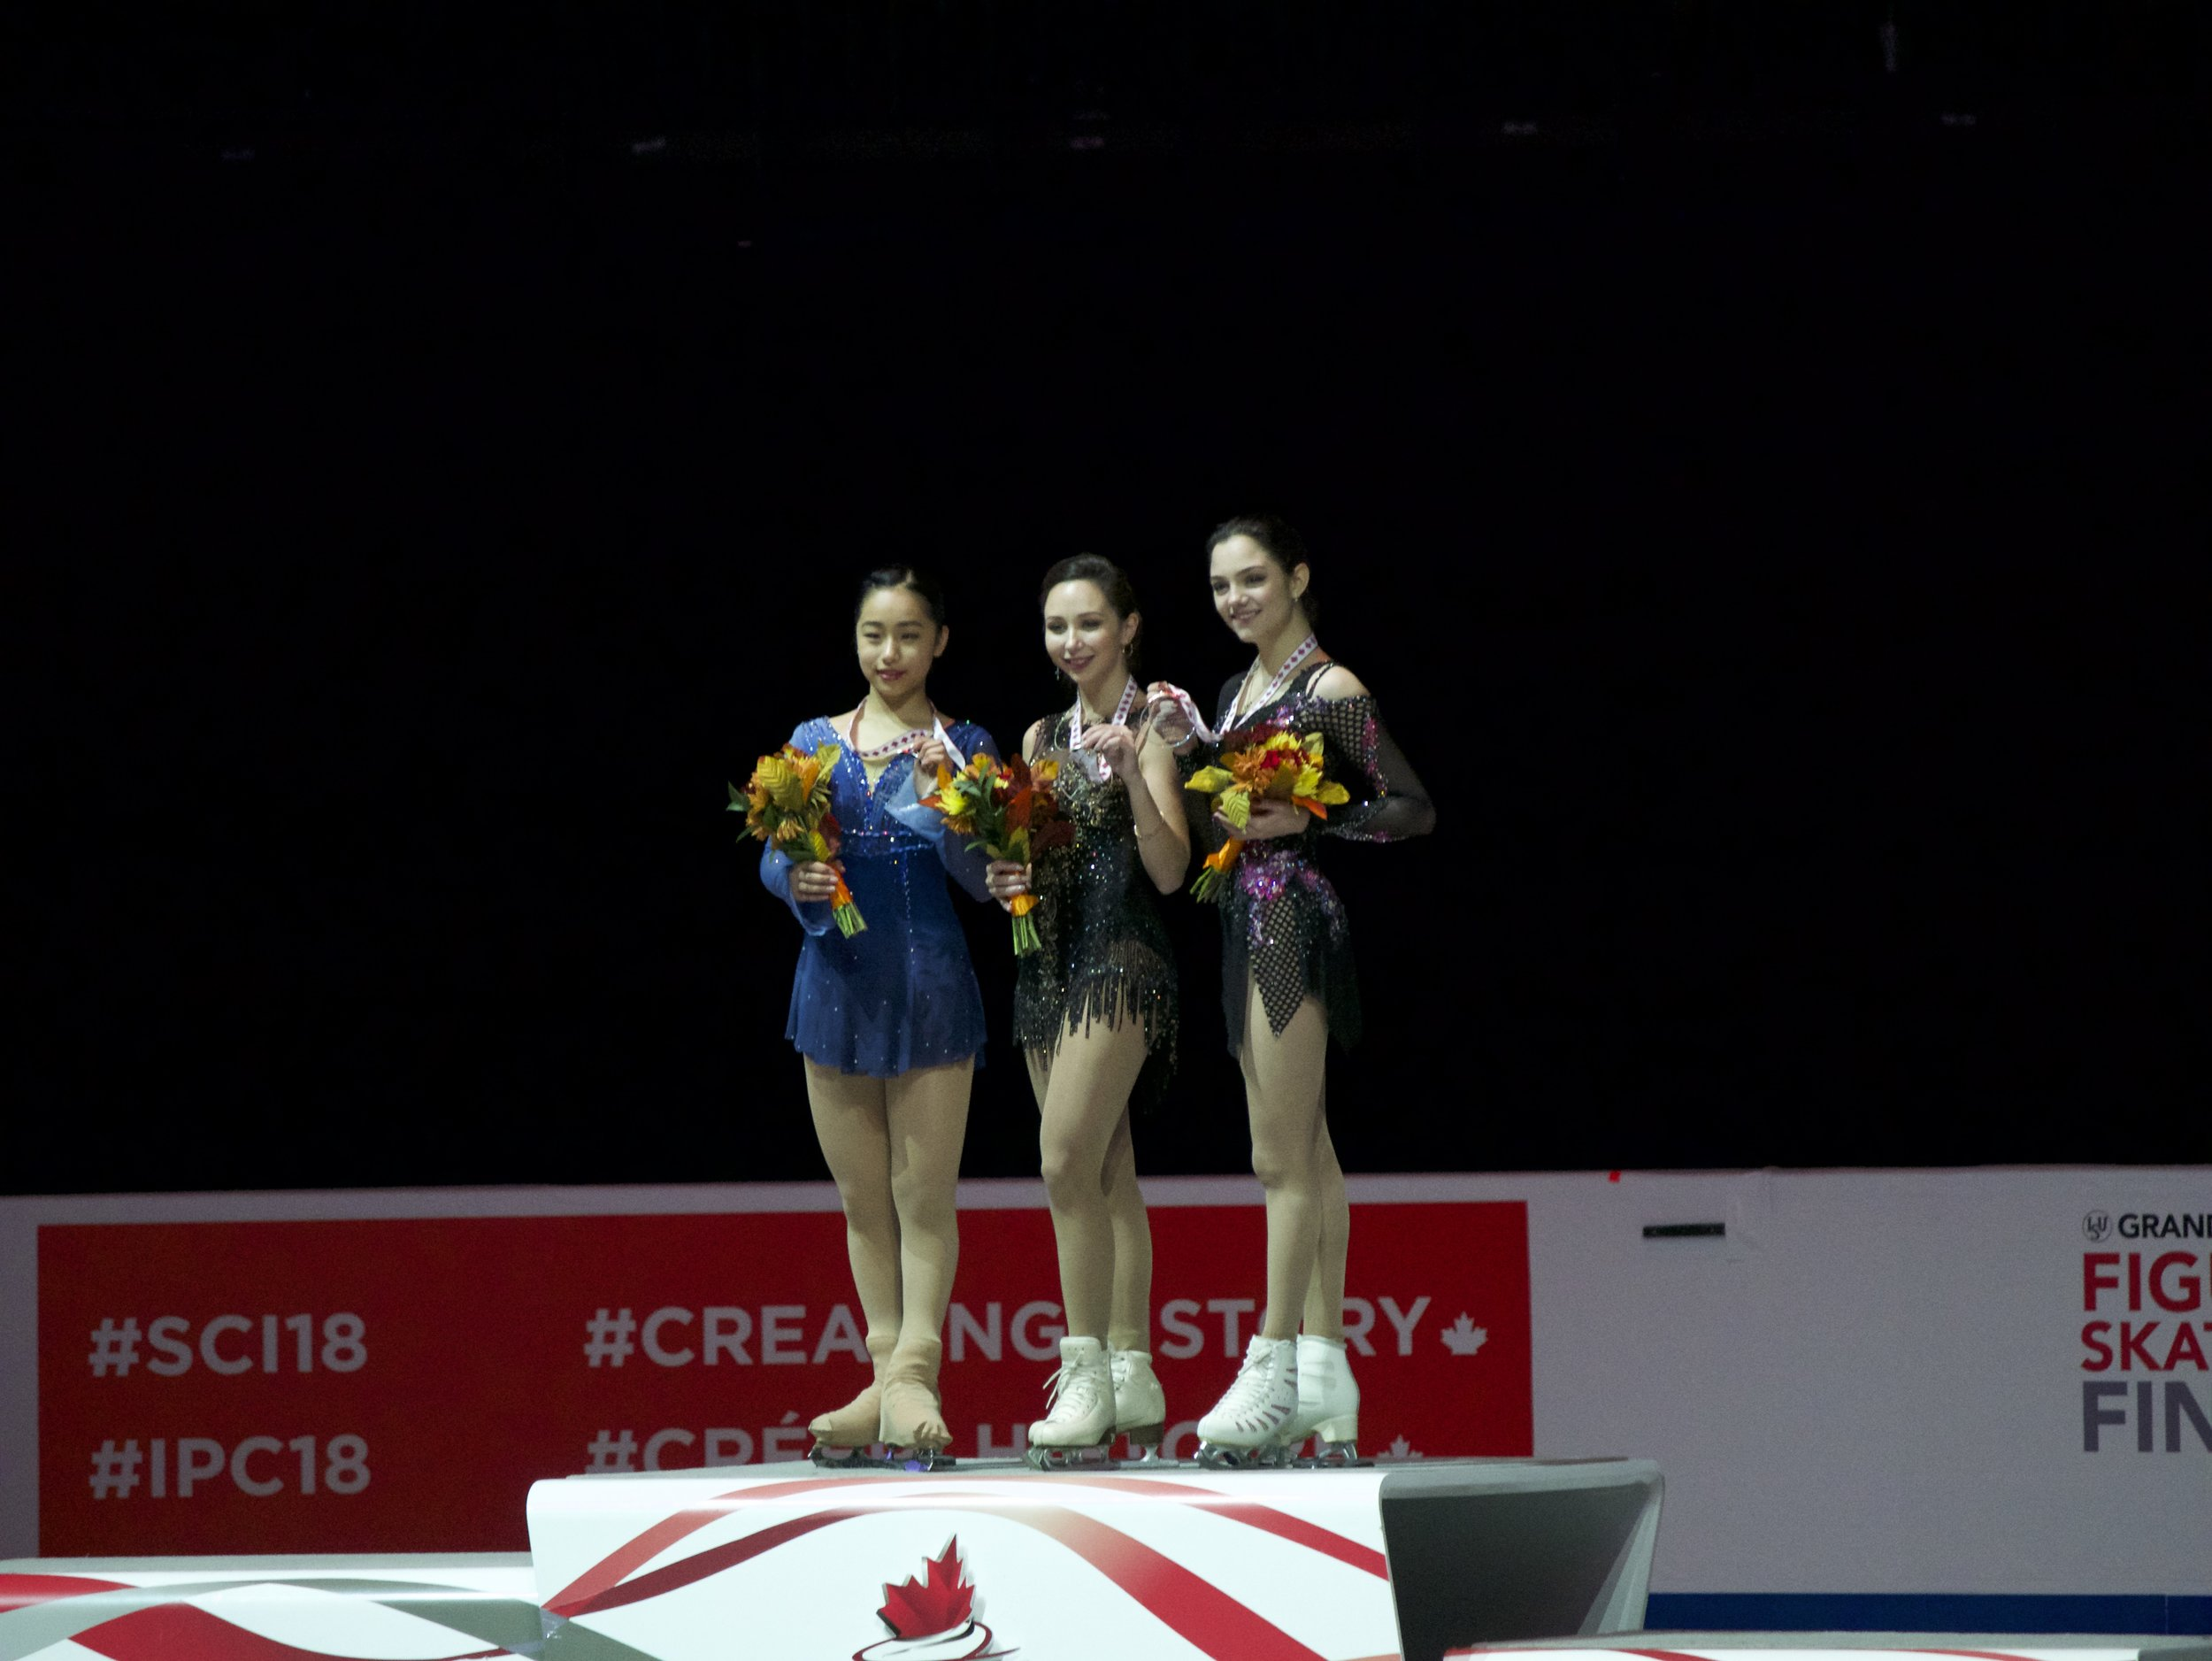 Ladies Victory Ceremony at Skate 2018 (   Photo credit: Gabb   )